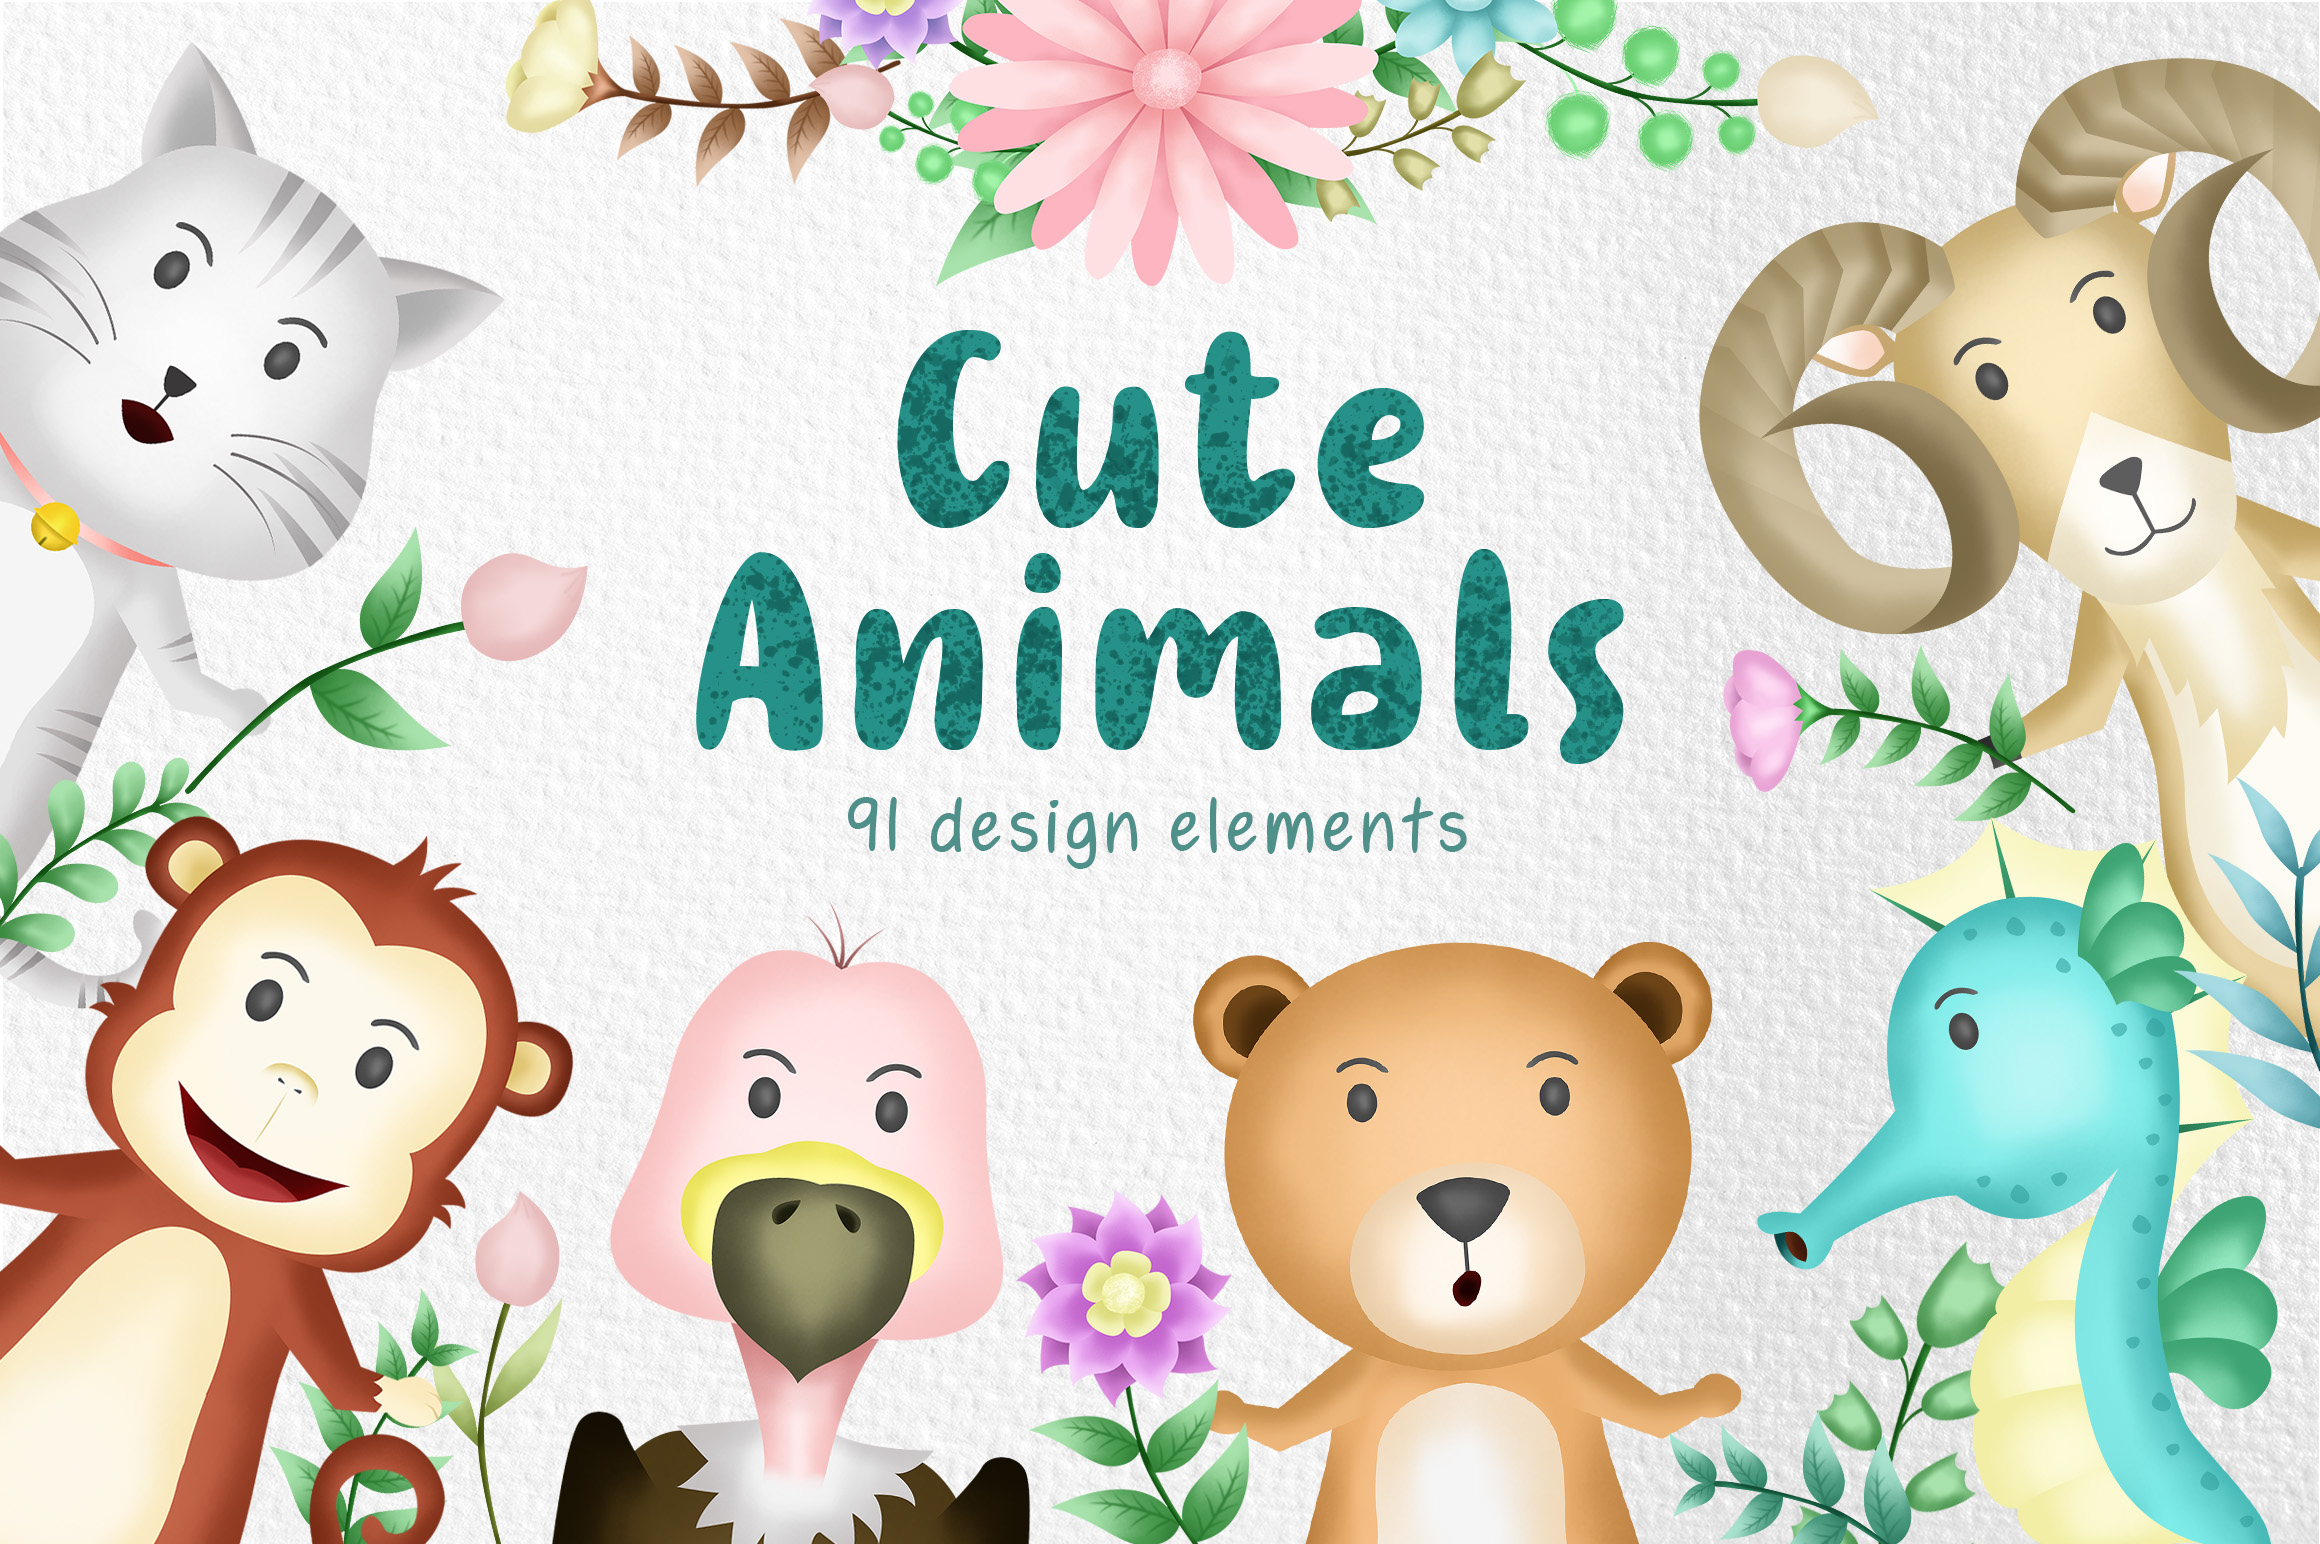 Download Free Cute Animals Part 2 Graphic By Wijayariko Creative Fabrica for Cricut Explore, Silhouette and other cutting machines.